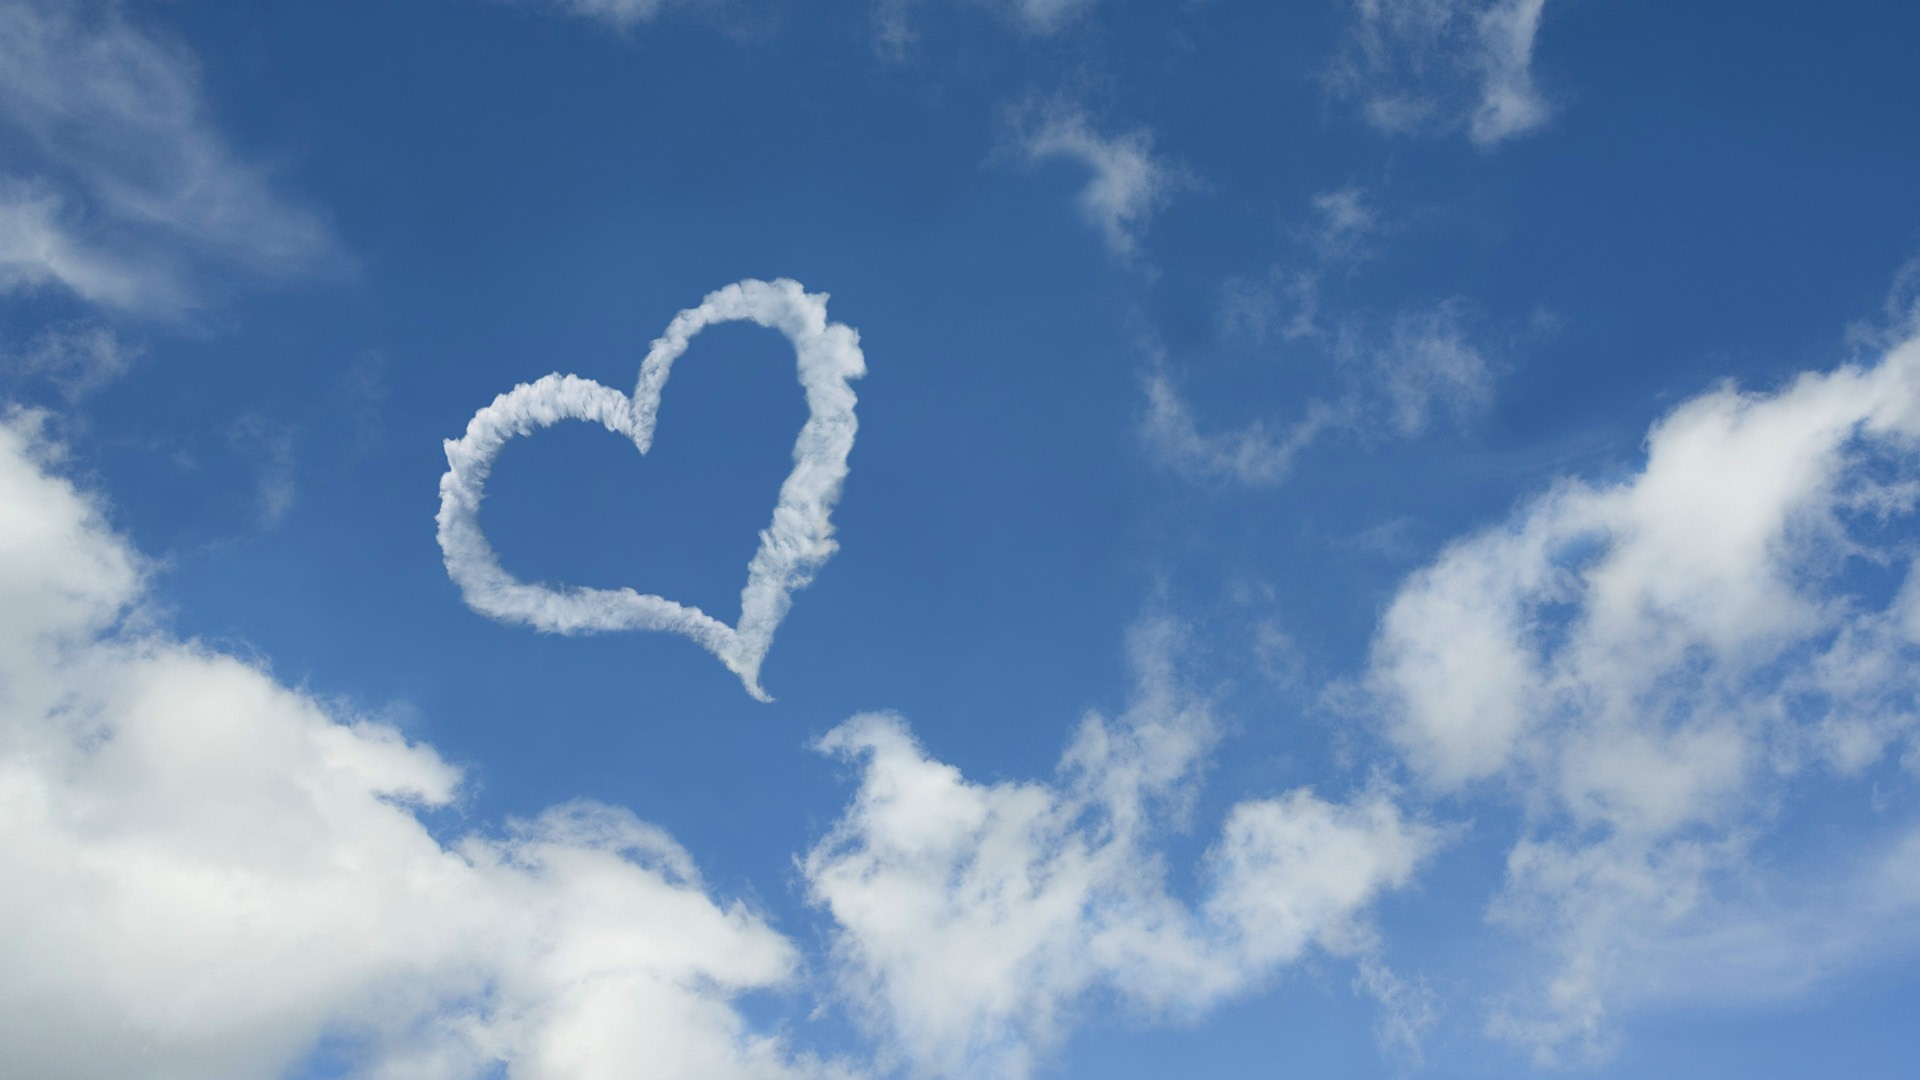 Love Expressing Wallpapers : cloud wallpaper heart love - HD Desktop Wallpapers 4k HD